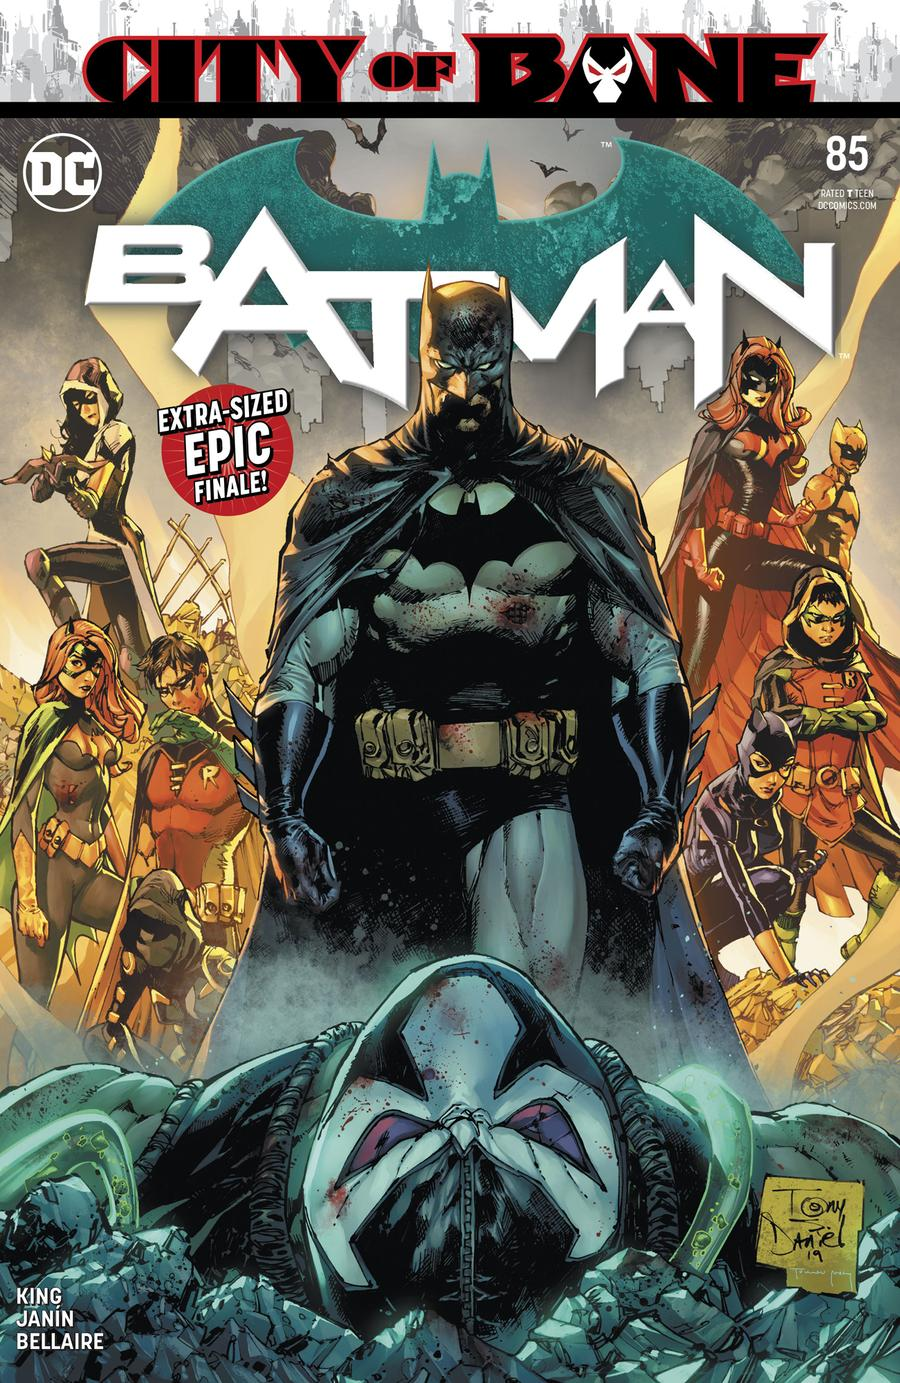 Batman Vol 3 #85 Cover A Regular Tony S Daniel Cover